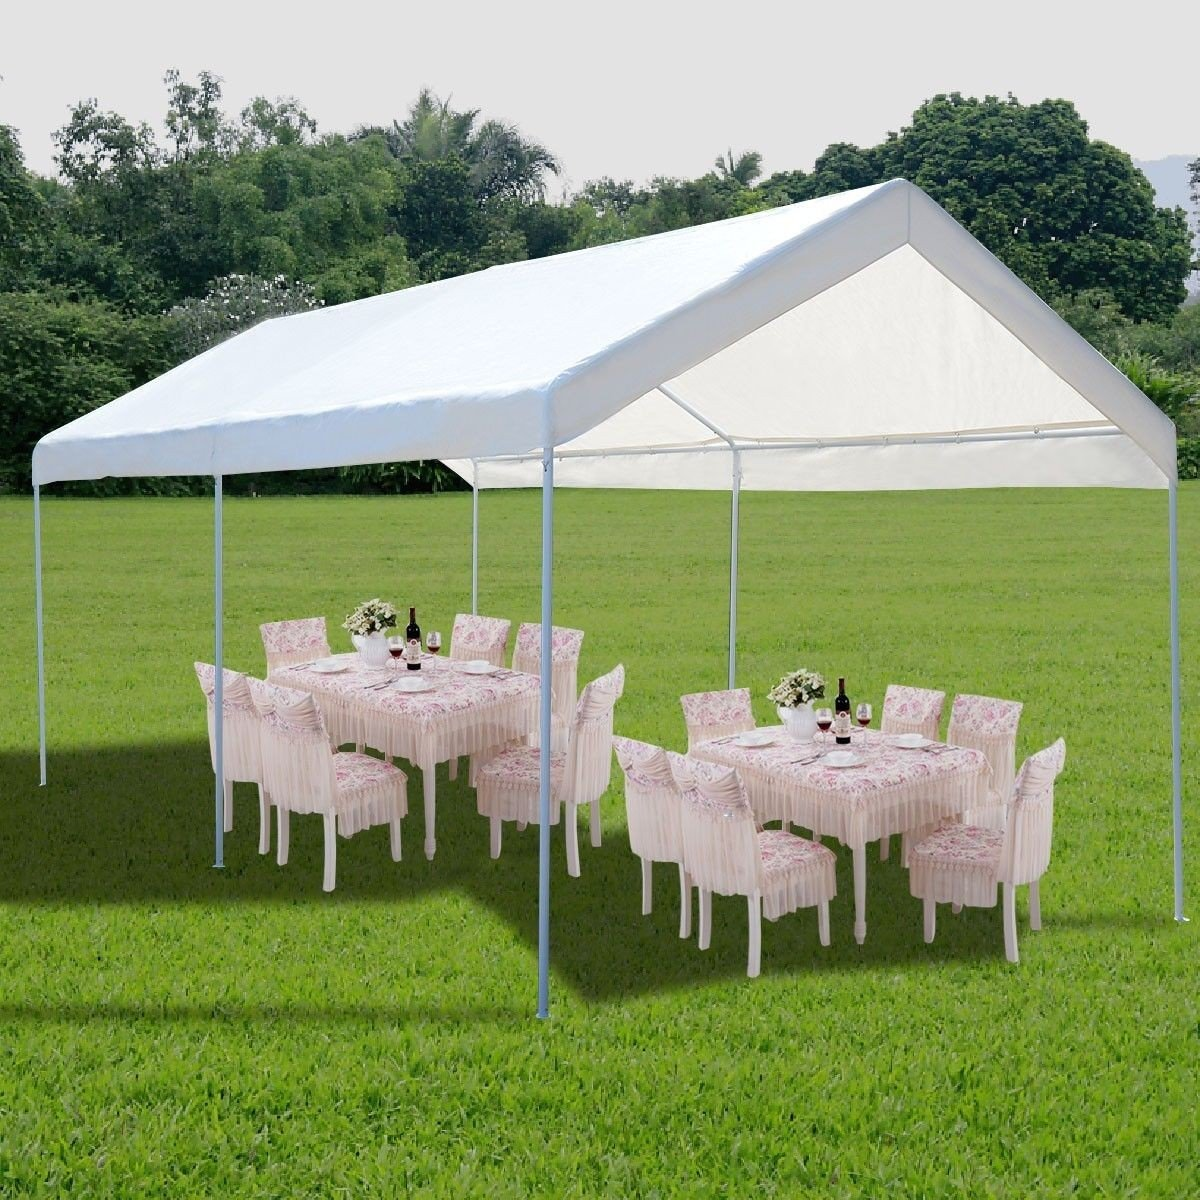 Amazon.com  10 x 20 Steel Frame Canopy Shelter Portable Car Carport Garage Cover Party Tent - 6-Leg Construction With 1-1/4  Diameter Tubing ... & Amazon.com : 10 x 20 Steel Frame Canopy Shelter Portable Car ...